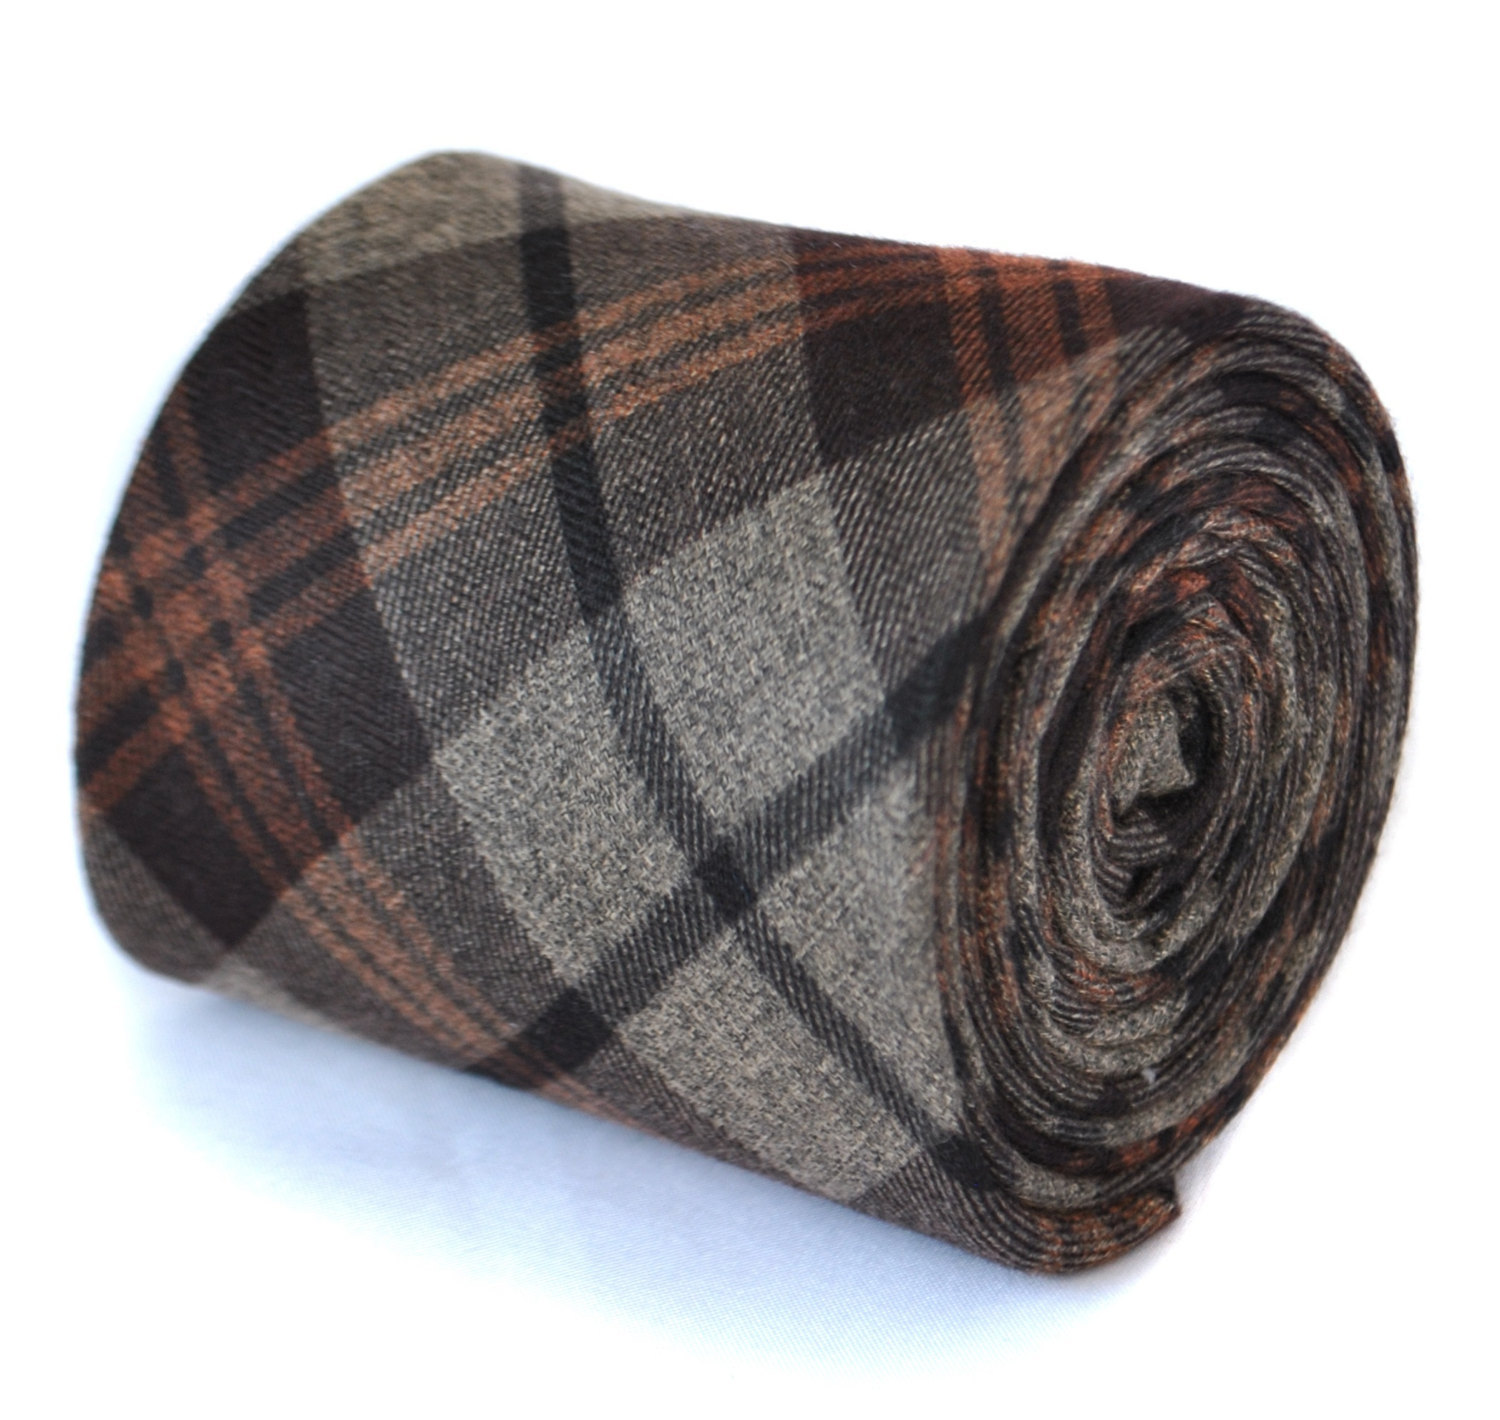 skinny brown 100% wool tweed check tie by Frederick Thomas FT2080